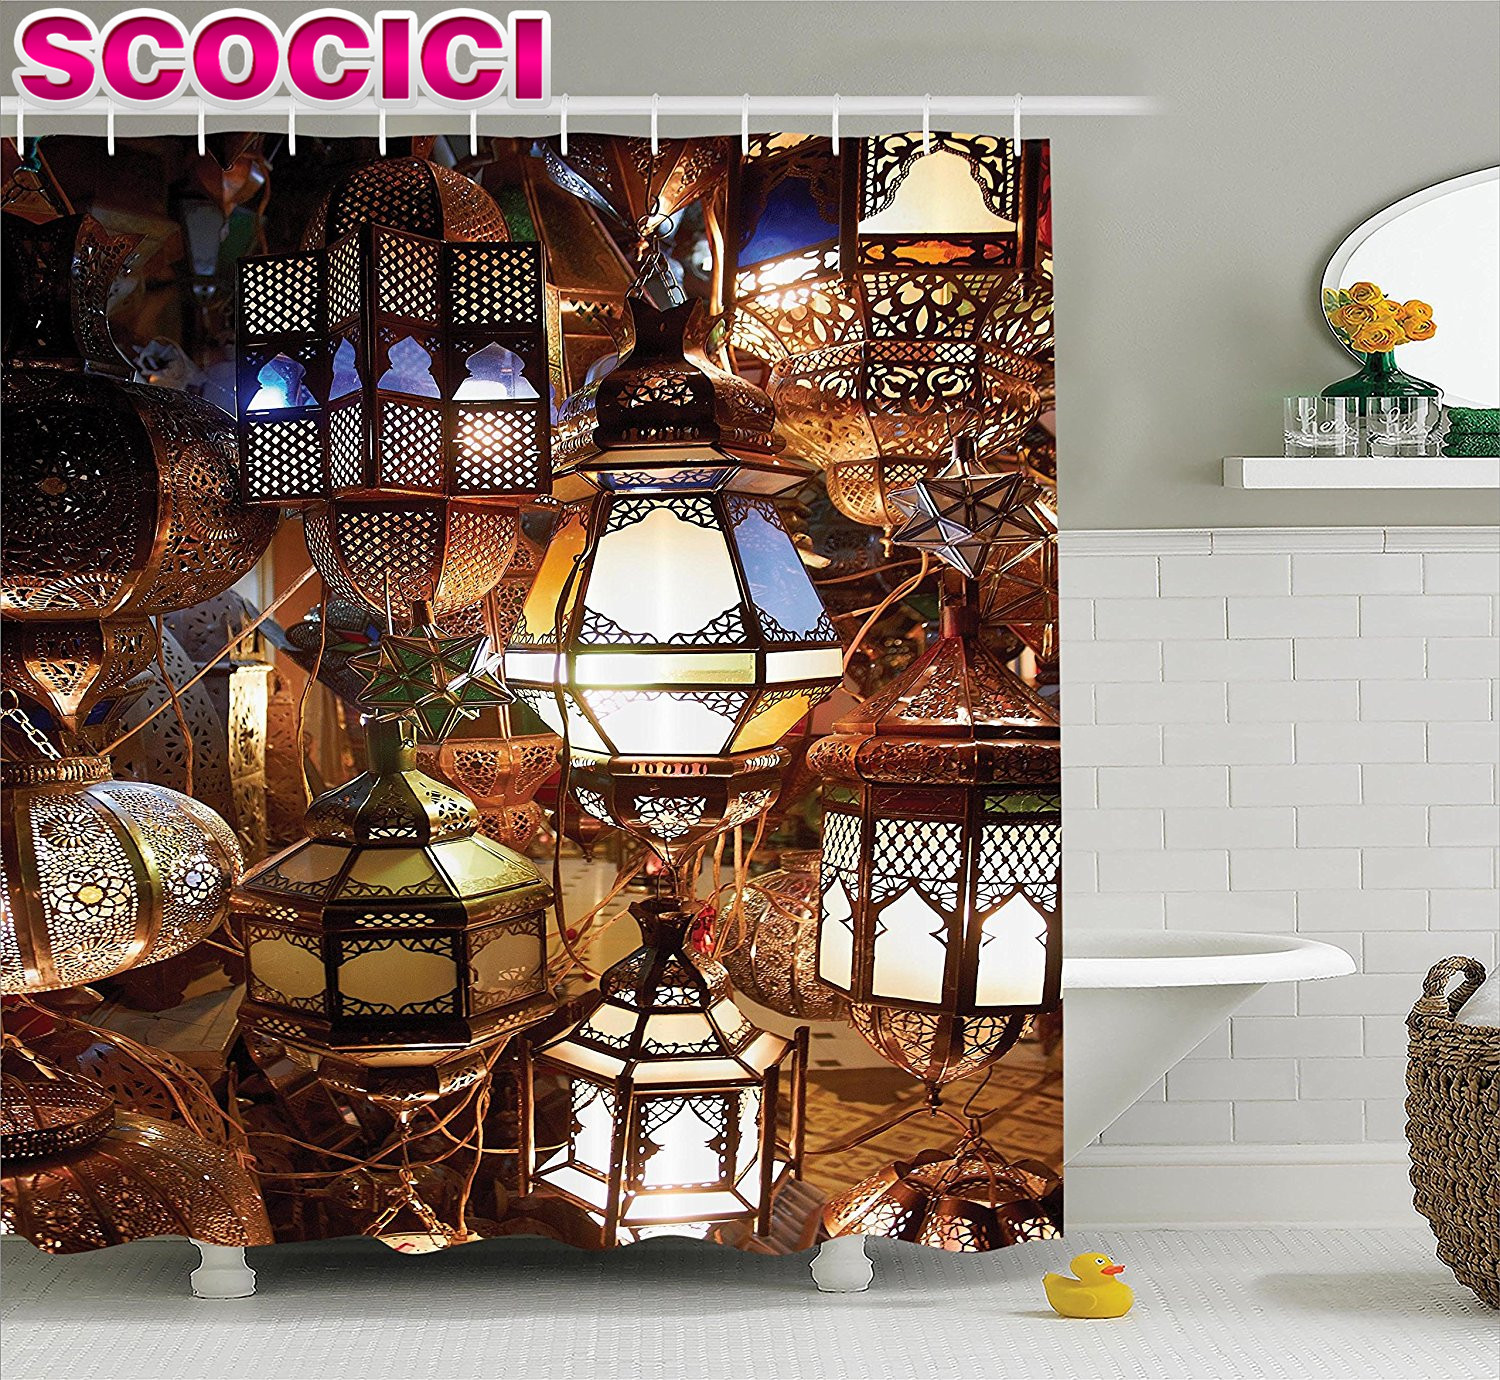 Moroccan curtains fabrics - Moroccan Decor Shower Curtain Arabic Lamps And Lanterns Souk Evening Culture Historical Picture Print Fabric Bathroom